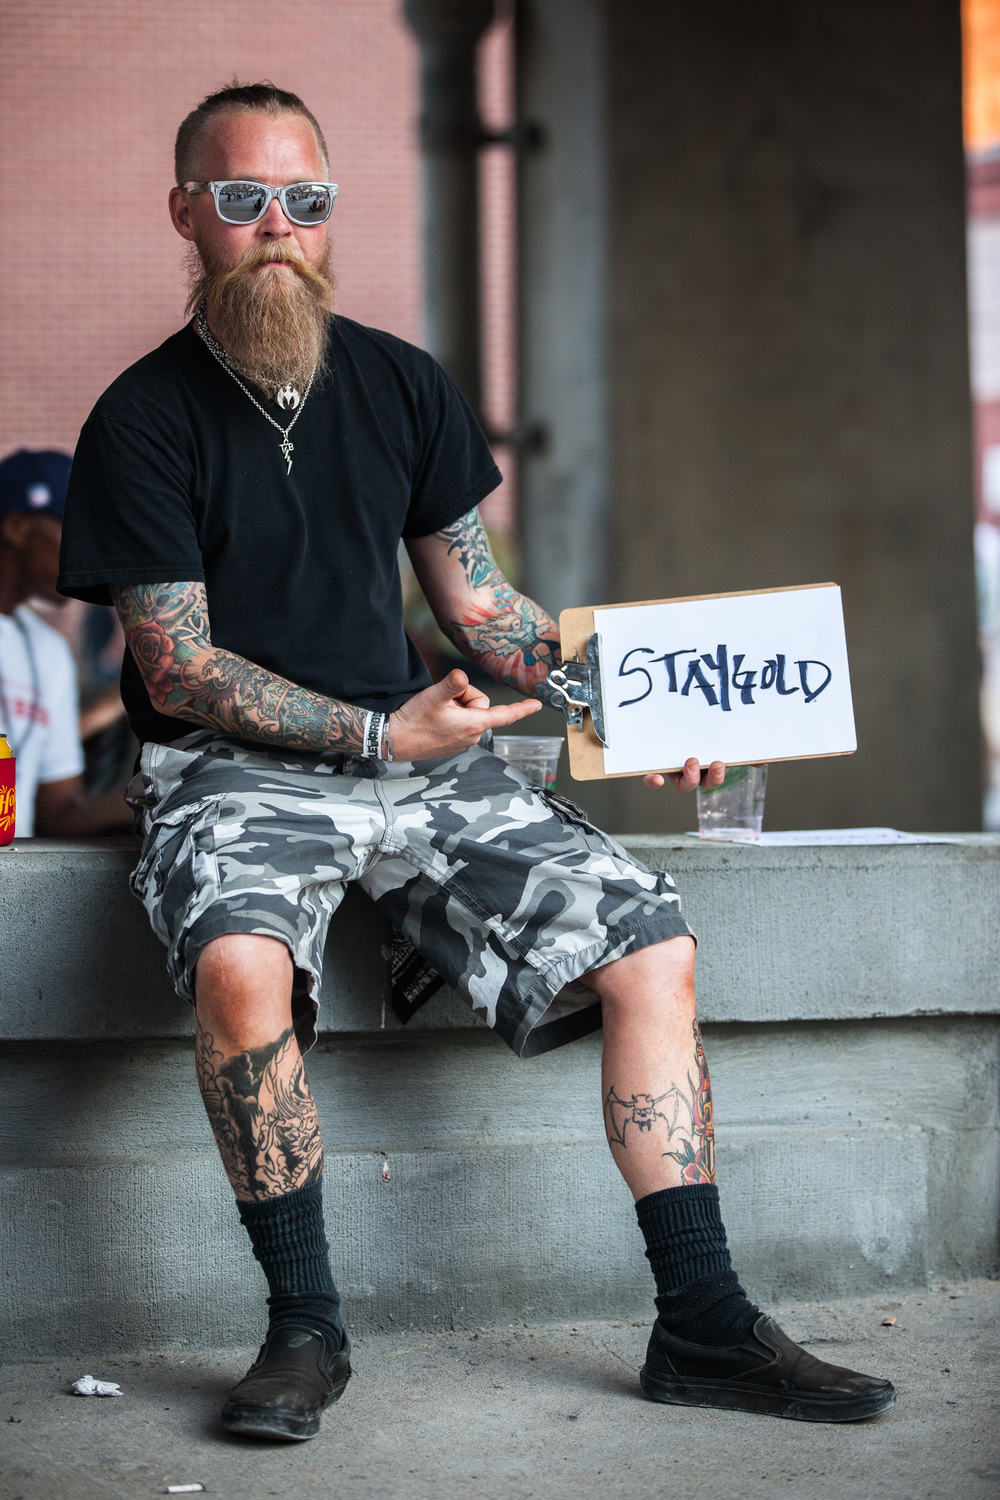 Man sitting while holding a sign that says stay gold.